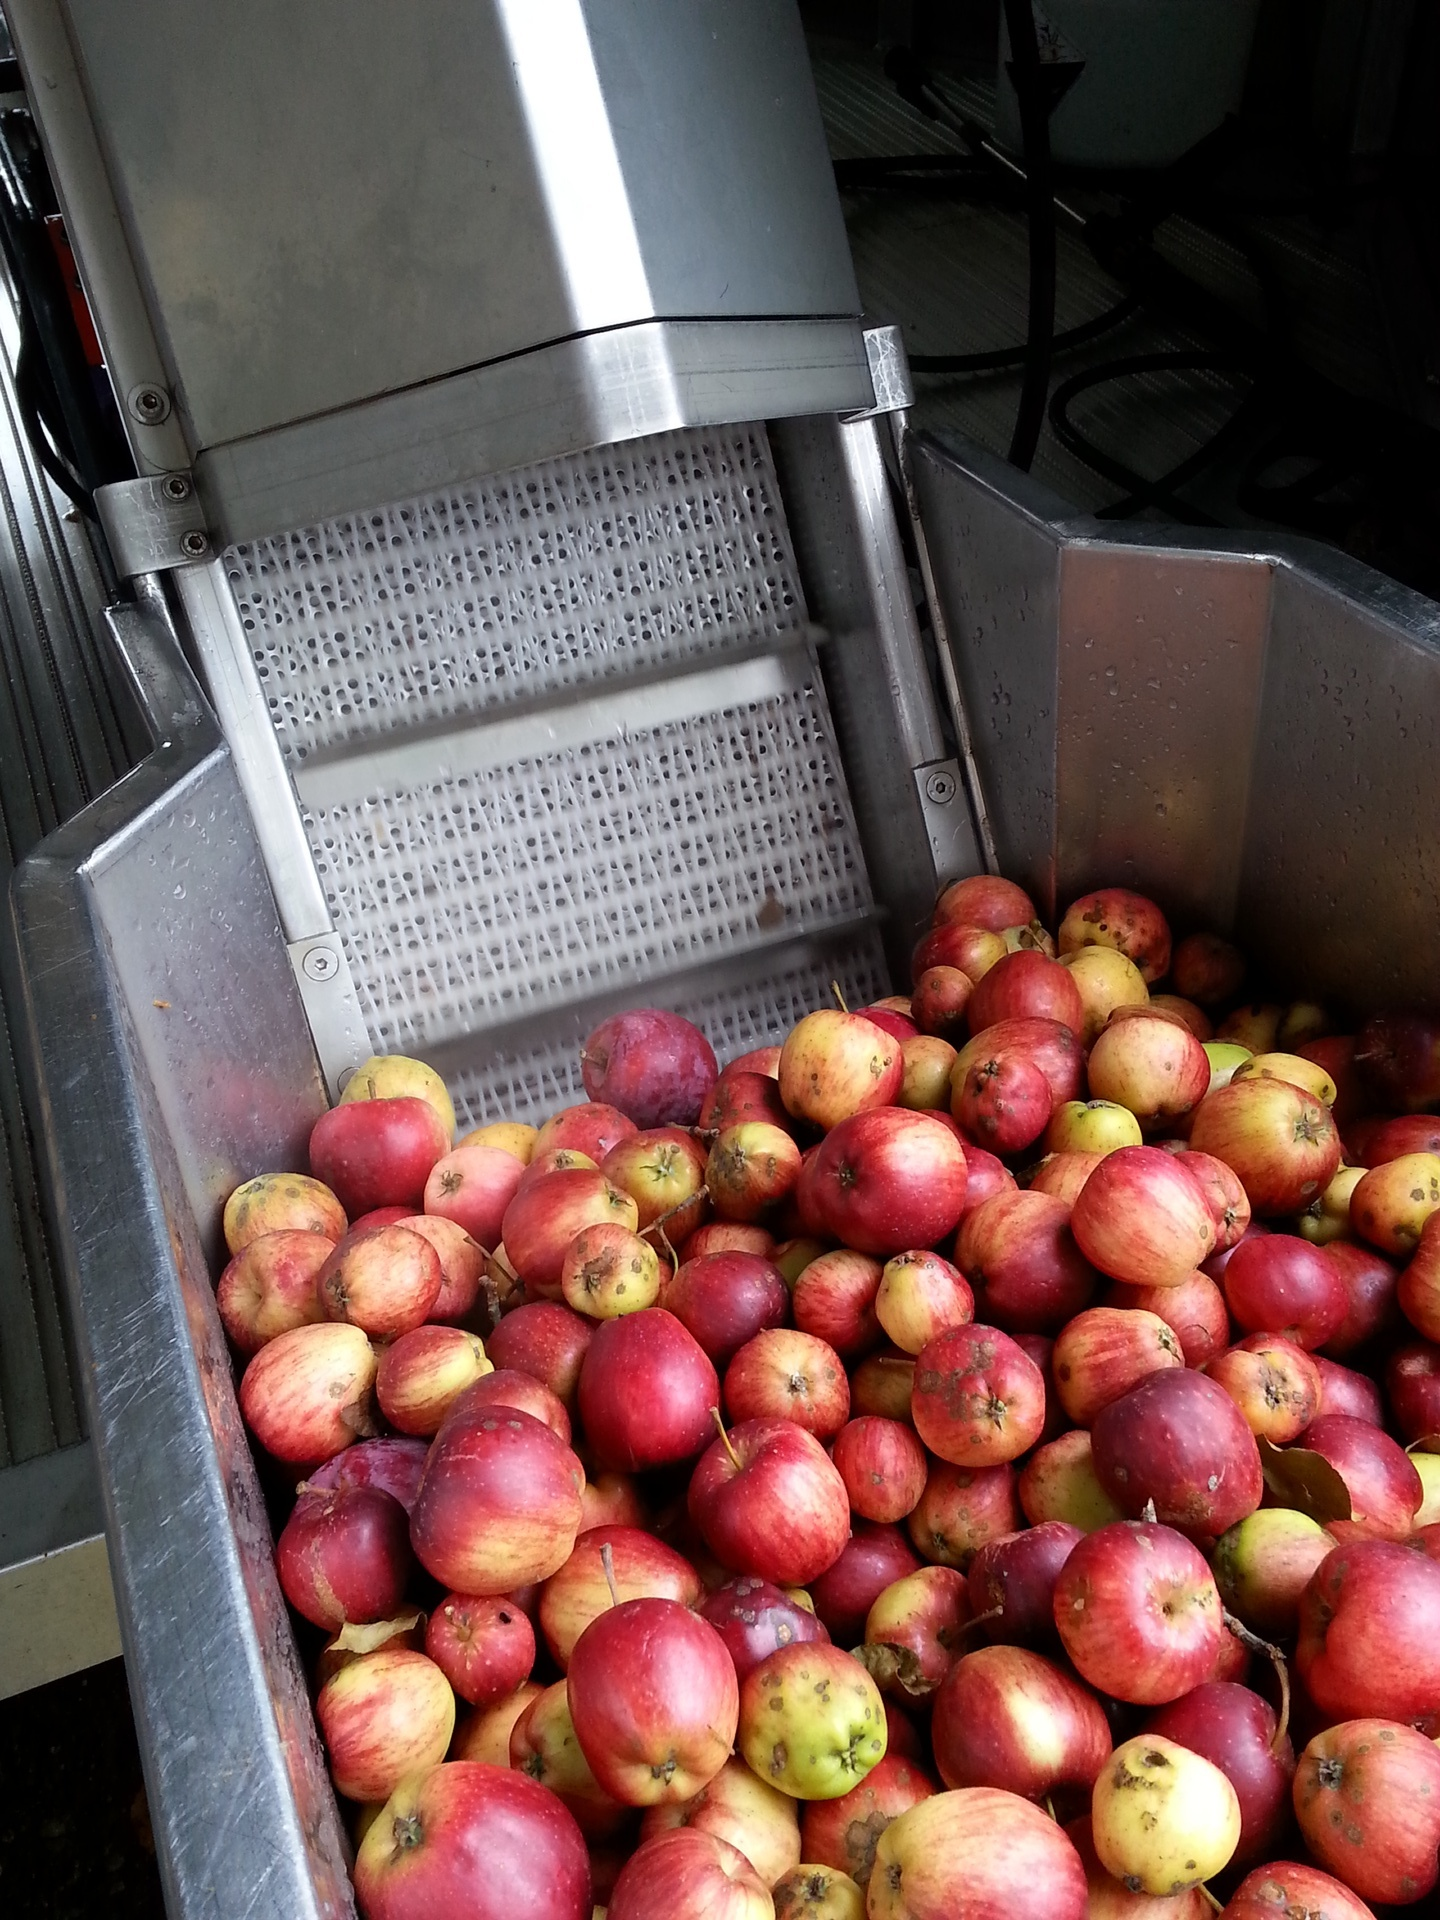 The apples begin their journey up the conveyor